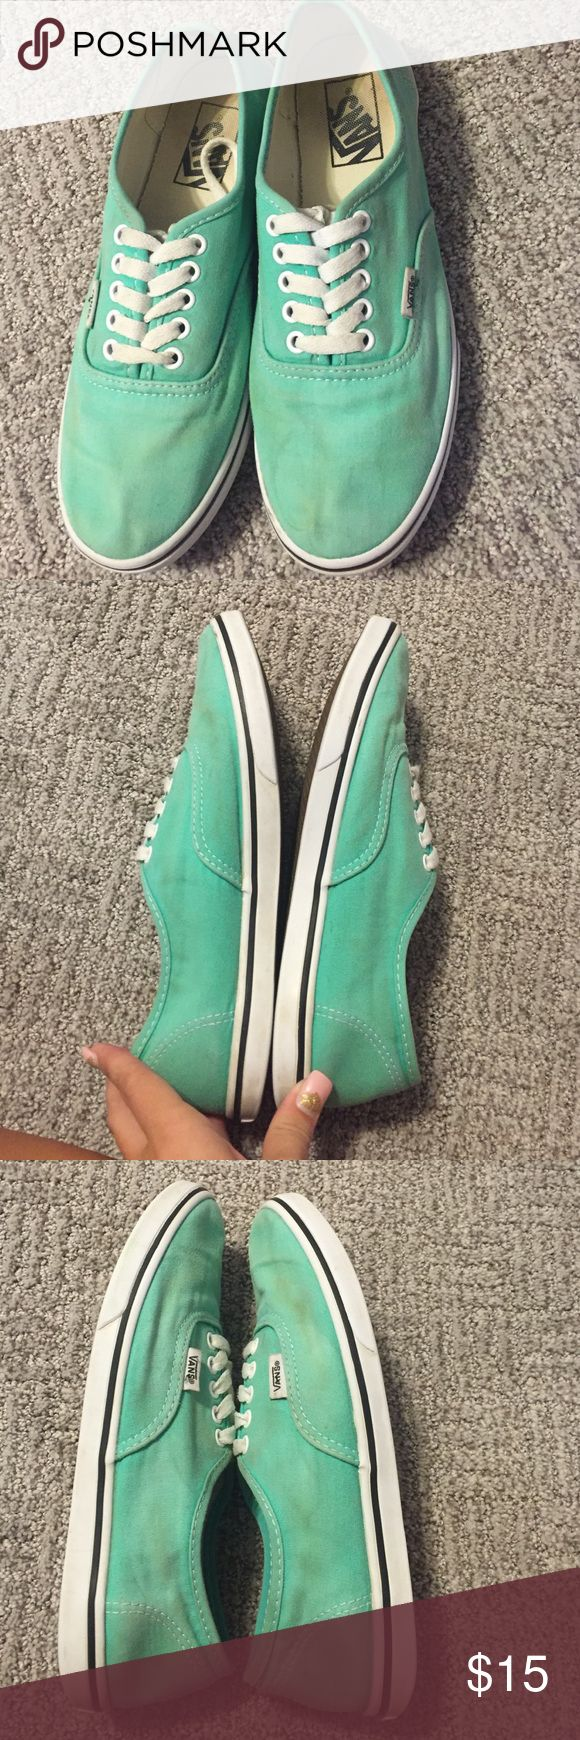 Mint green vans These are a pair of beautiful mint green vans. They are in good used condition. Looking for a new home! Make offers :) Vans Shoes